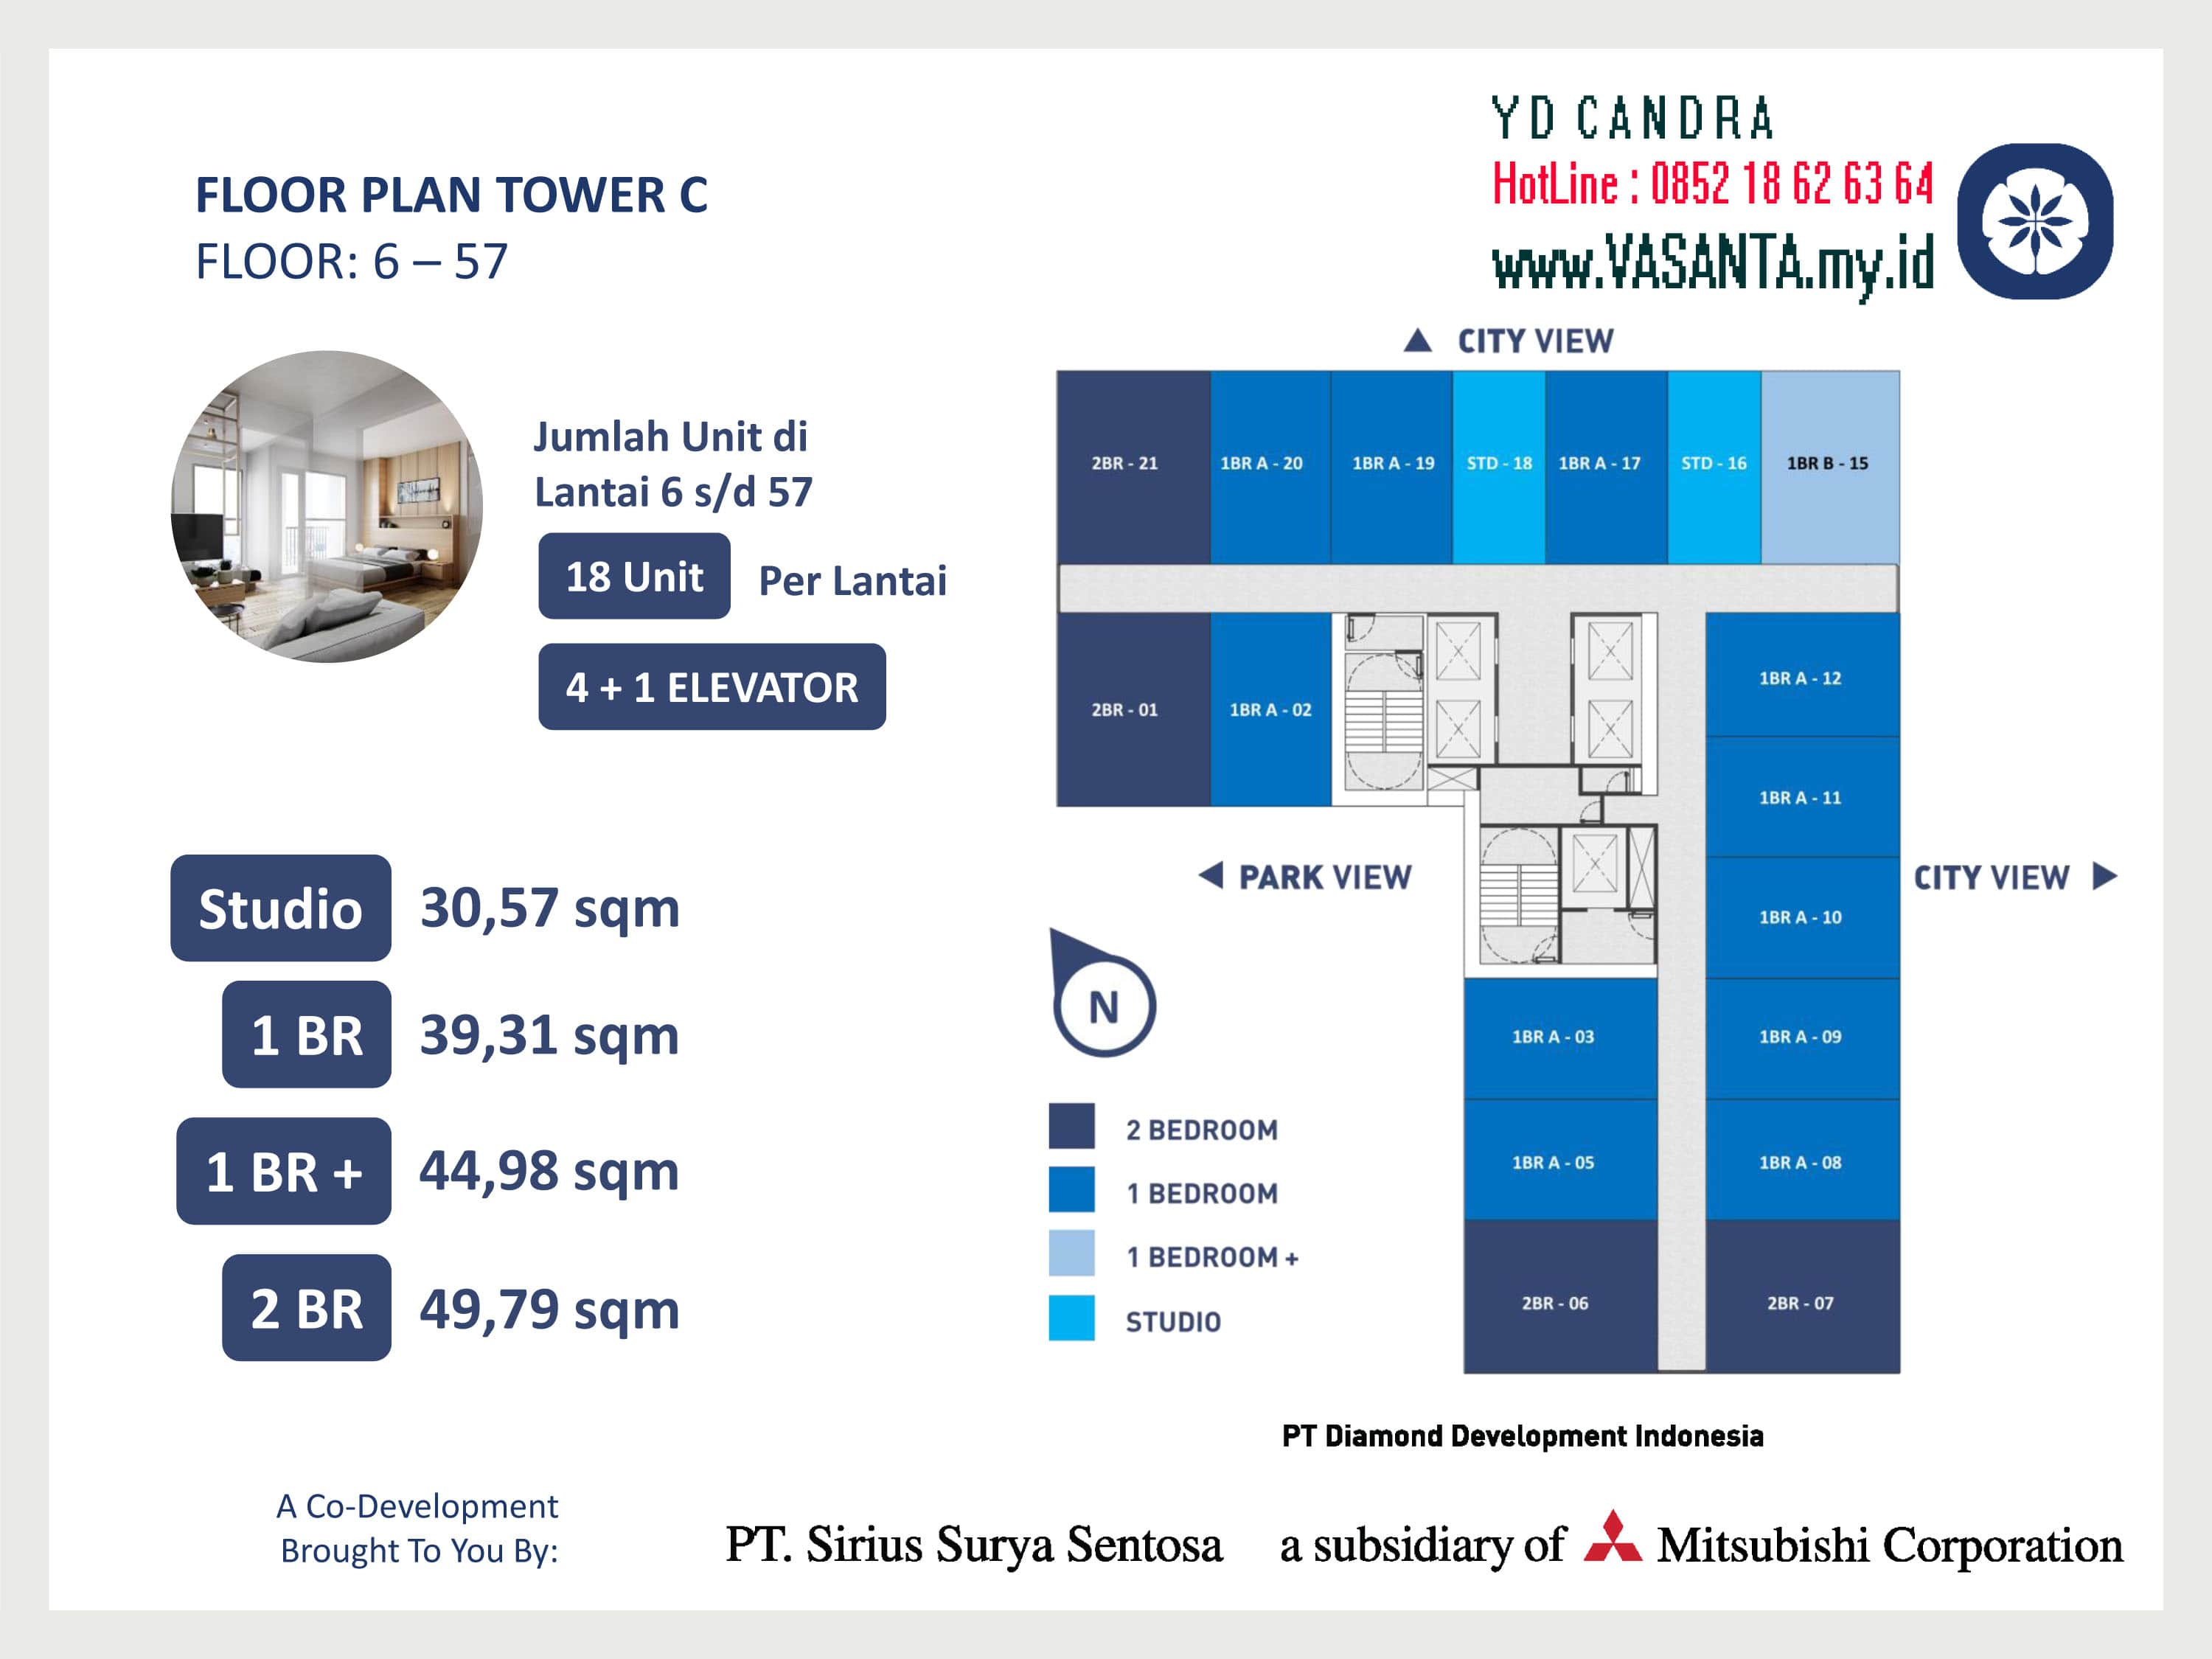 VASANTA Tower Chihana Floor Plan Tower C Floor 6 sampai 57